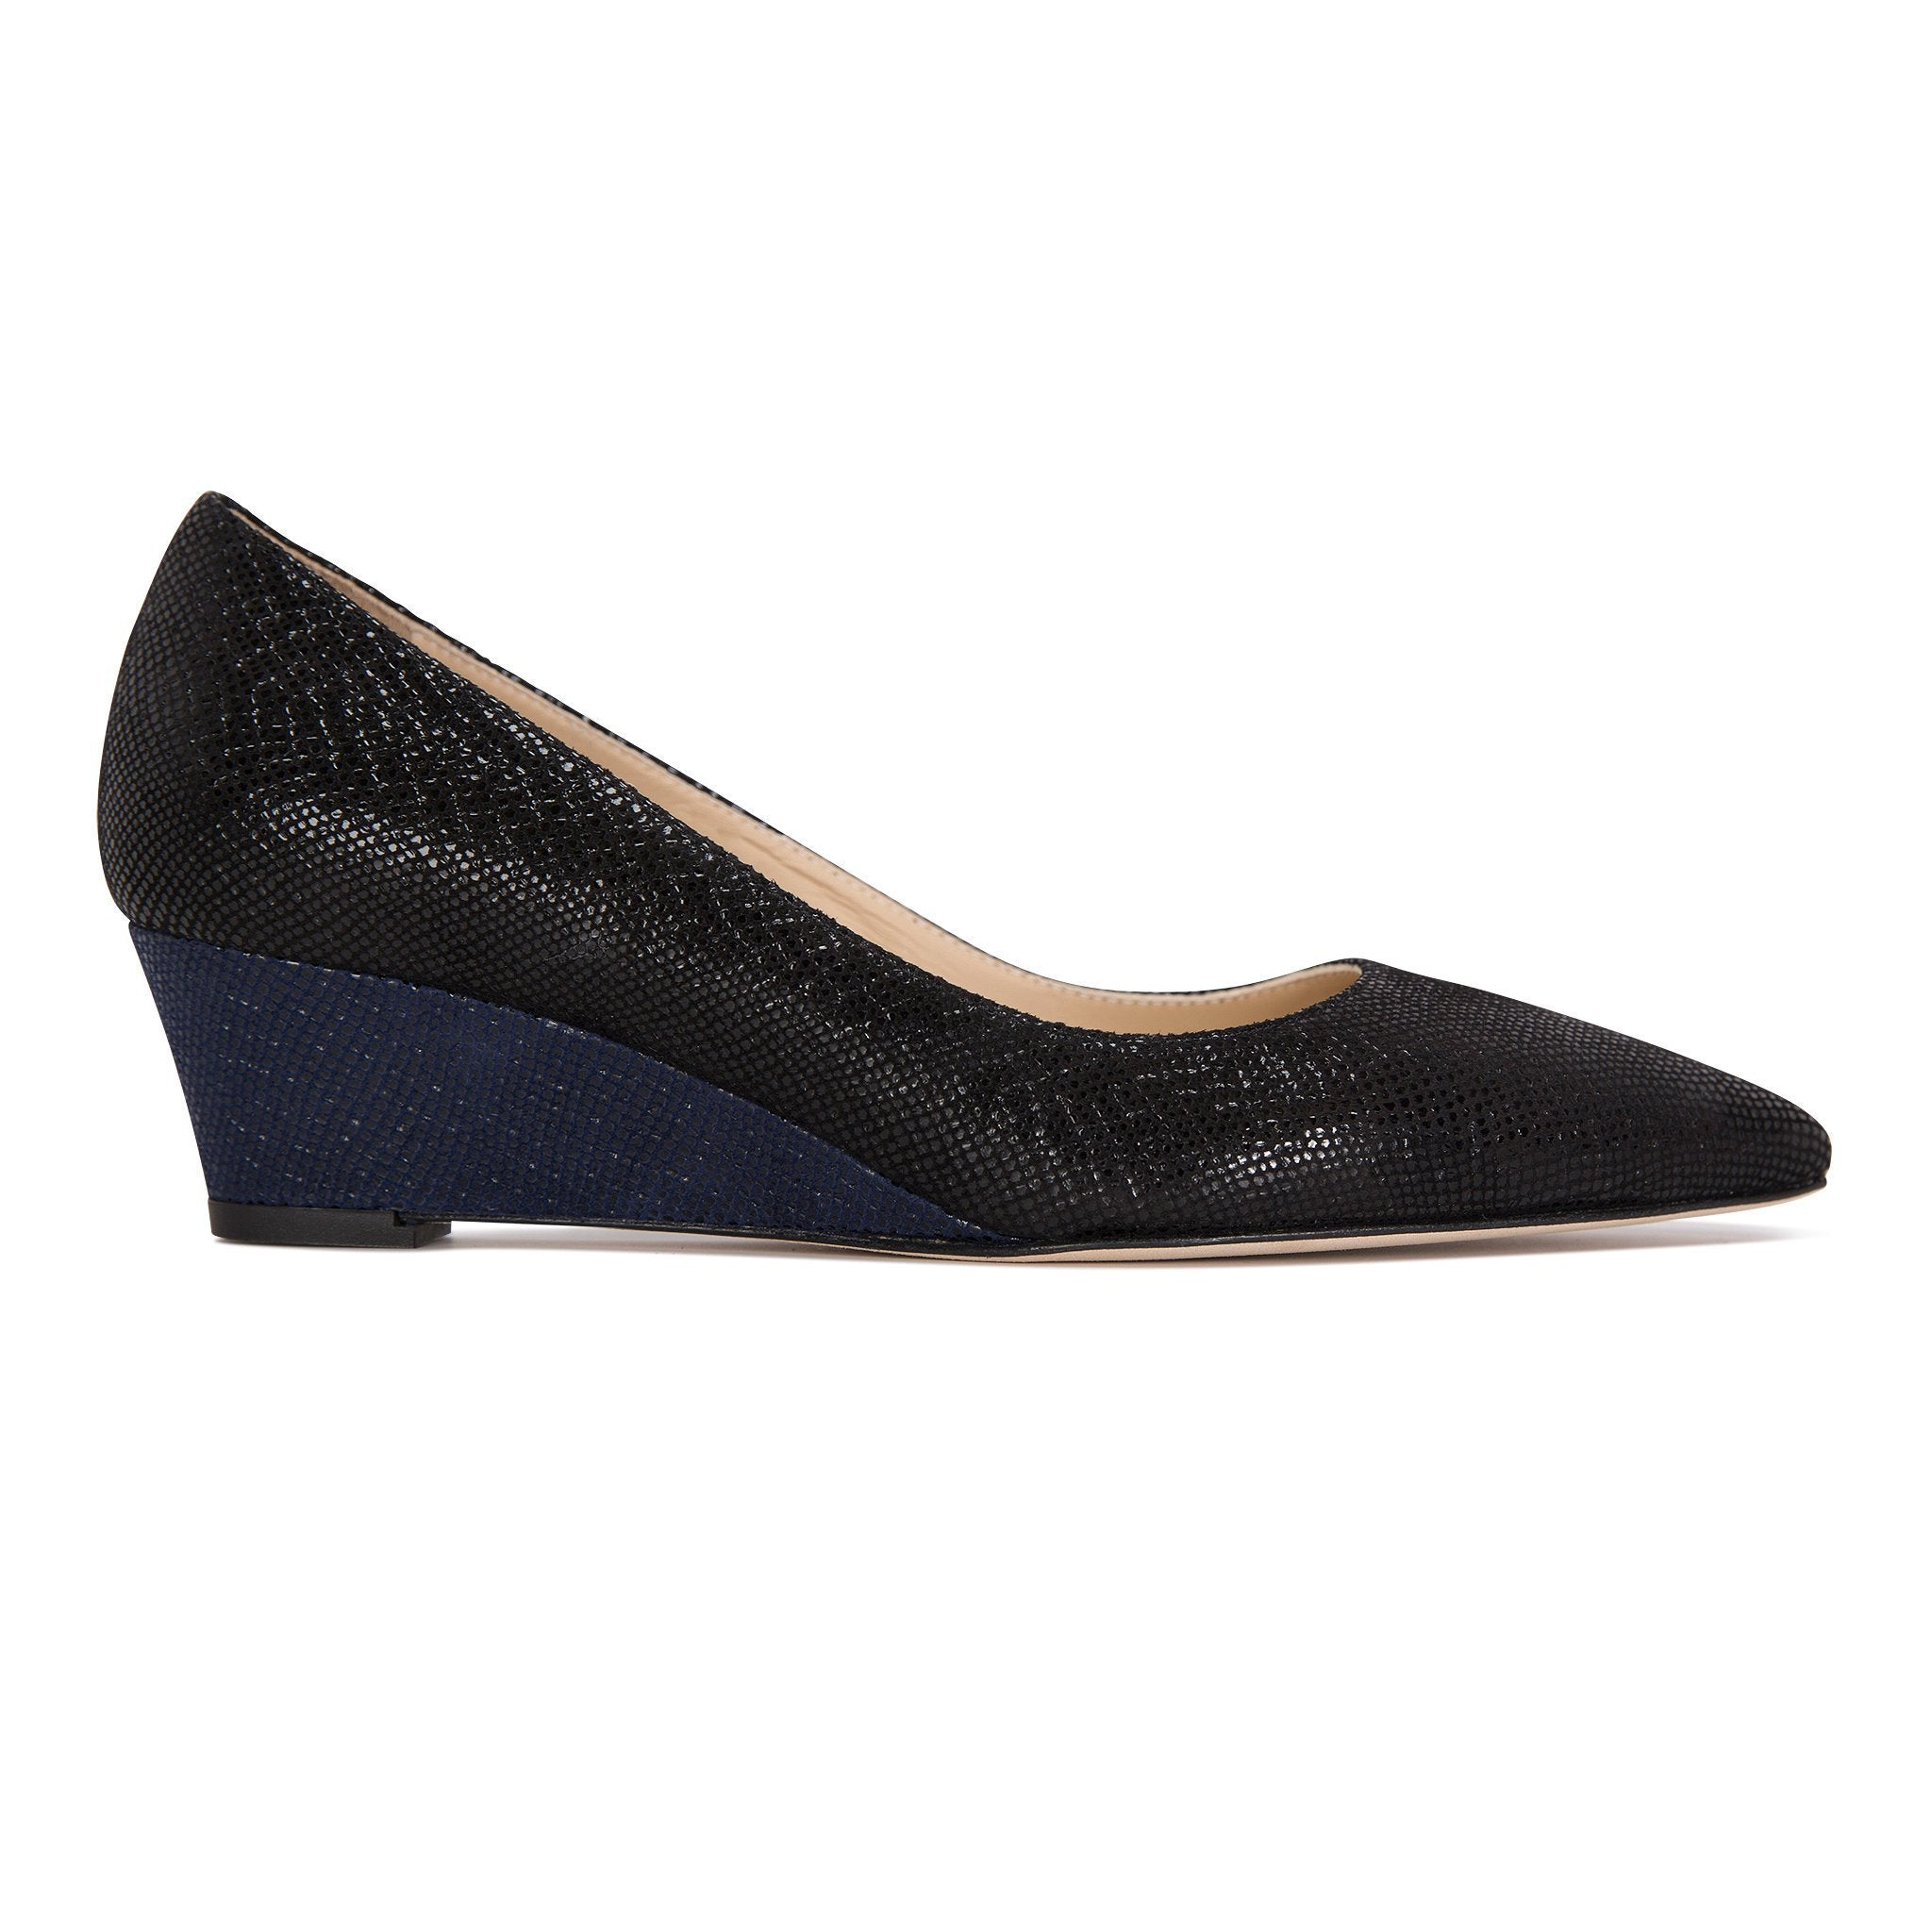 TRENTO - Karung Nero + Midnight, VIAJIYU - Women's Hand Made Sustainable Luxury Shoes. Made in Italy. Made to Order.